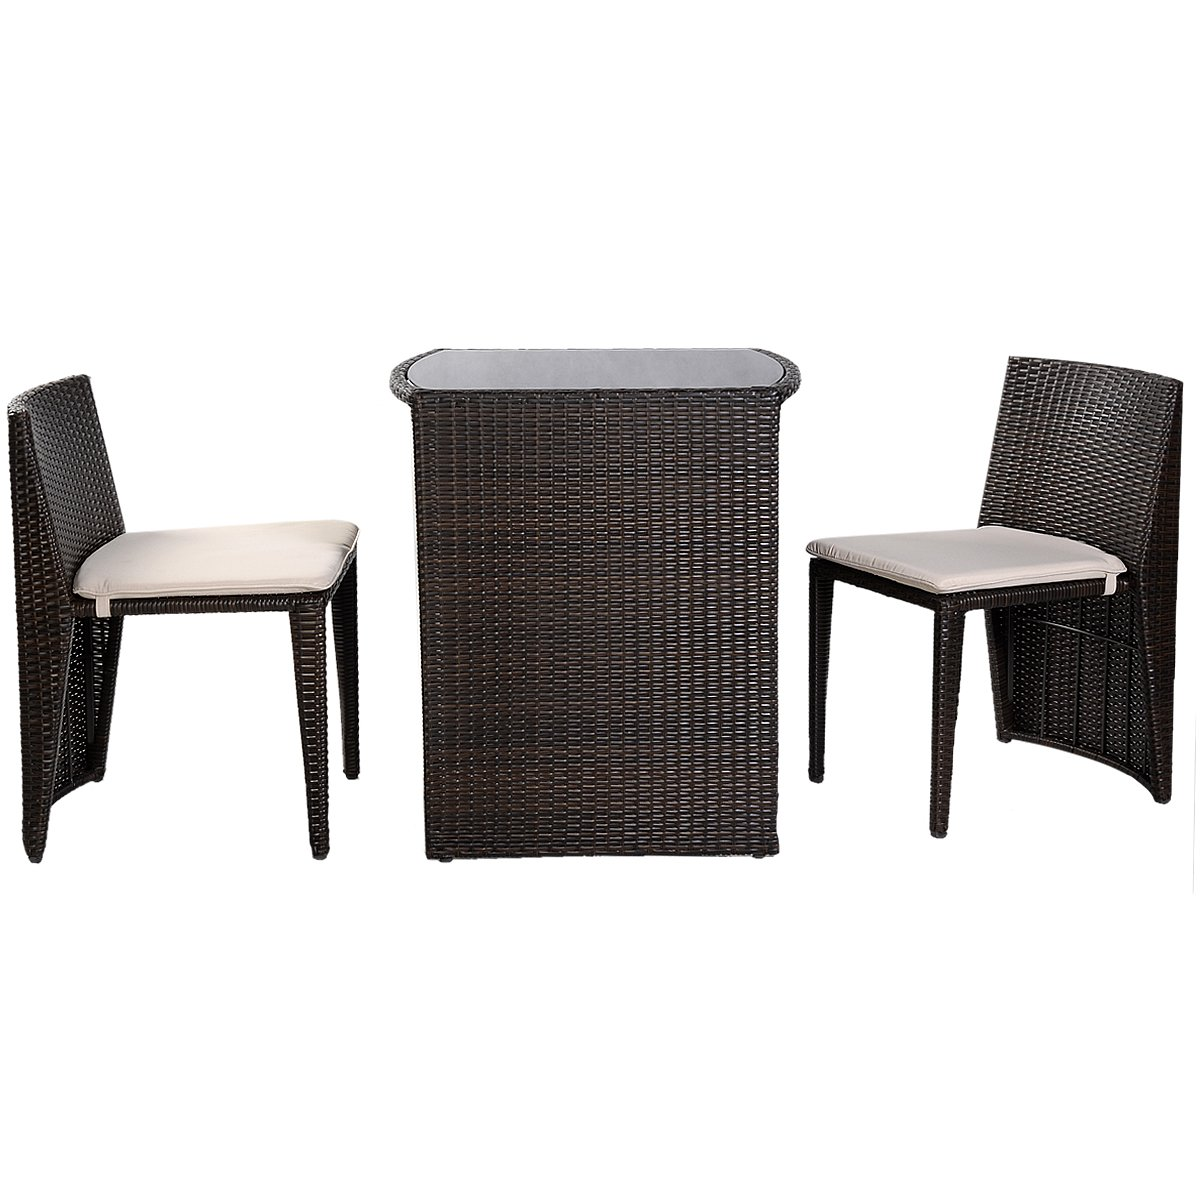 gartenm bel rattan set lounge set polyrattan sitzgruppe rattanm bel garnitur garten g nstig. Black Bedroom Furniture Sets. Home Design Ideas